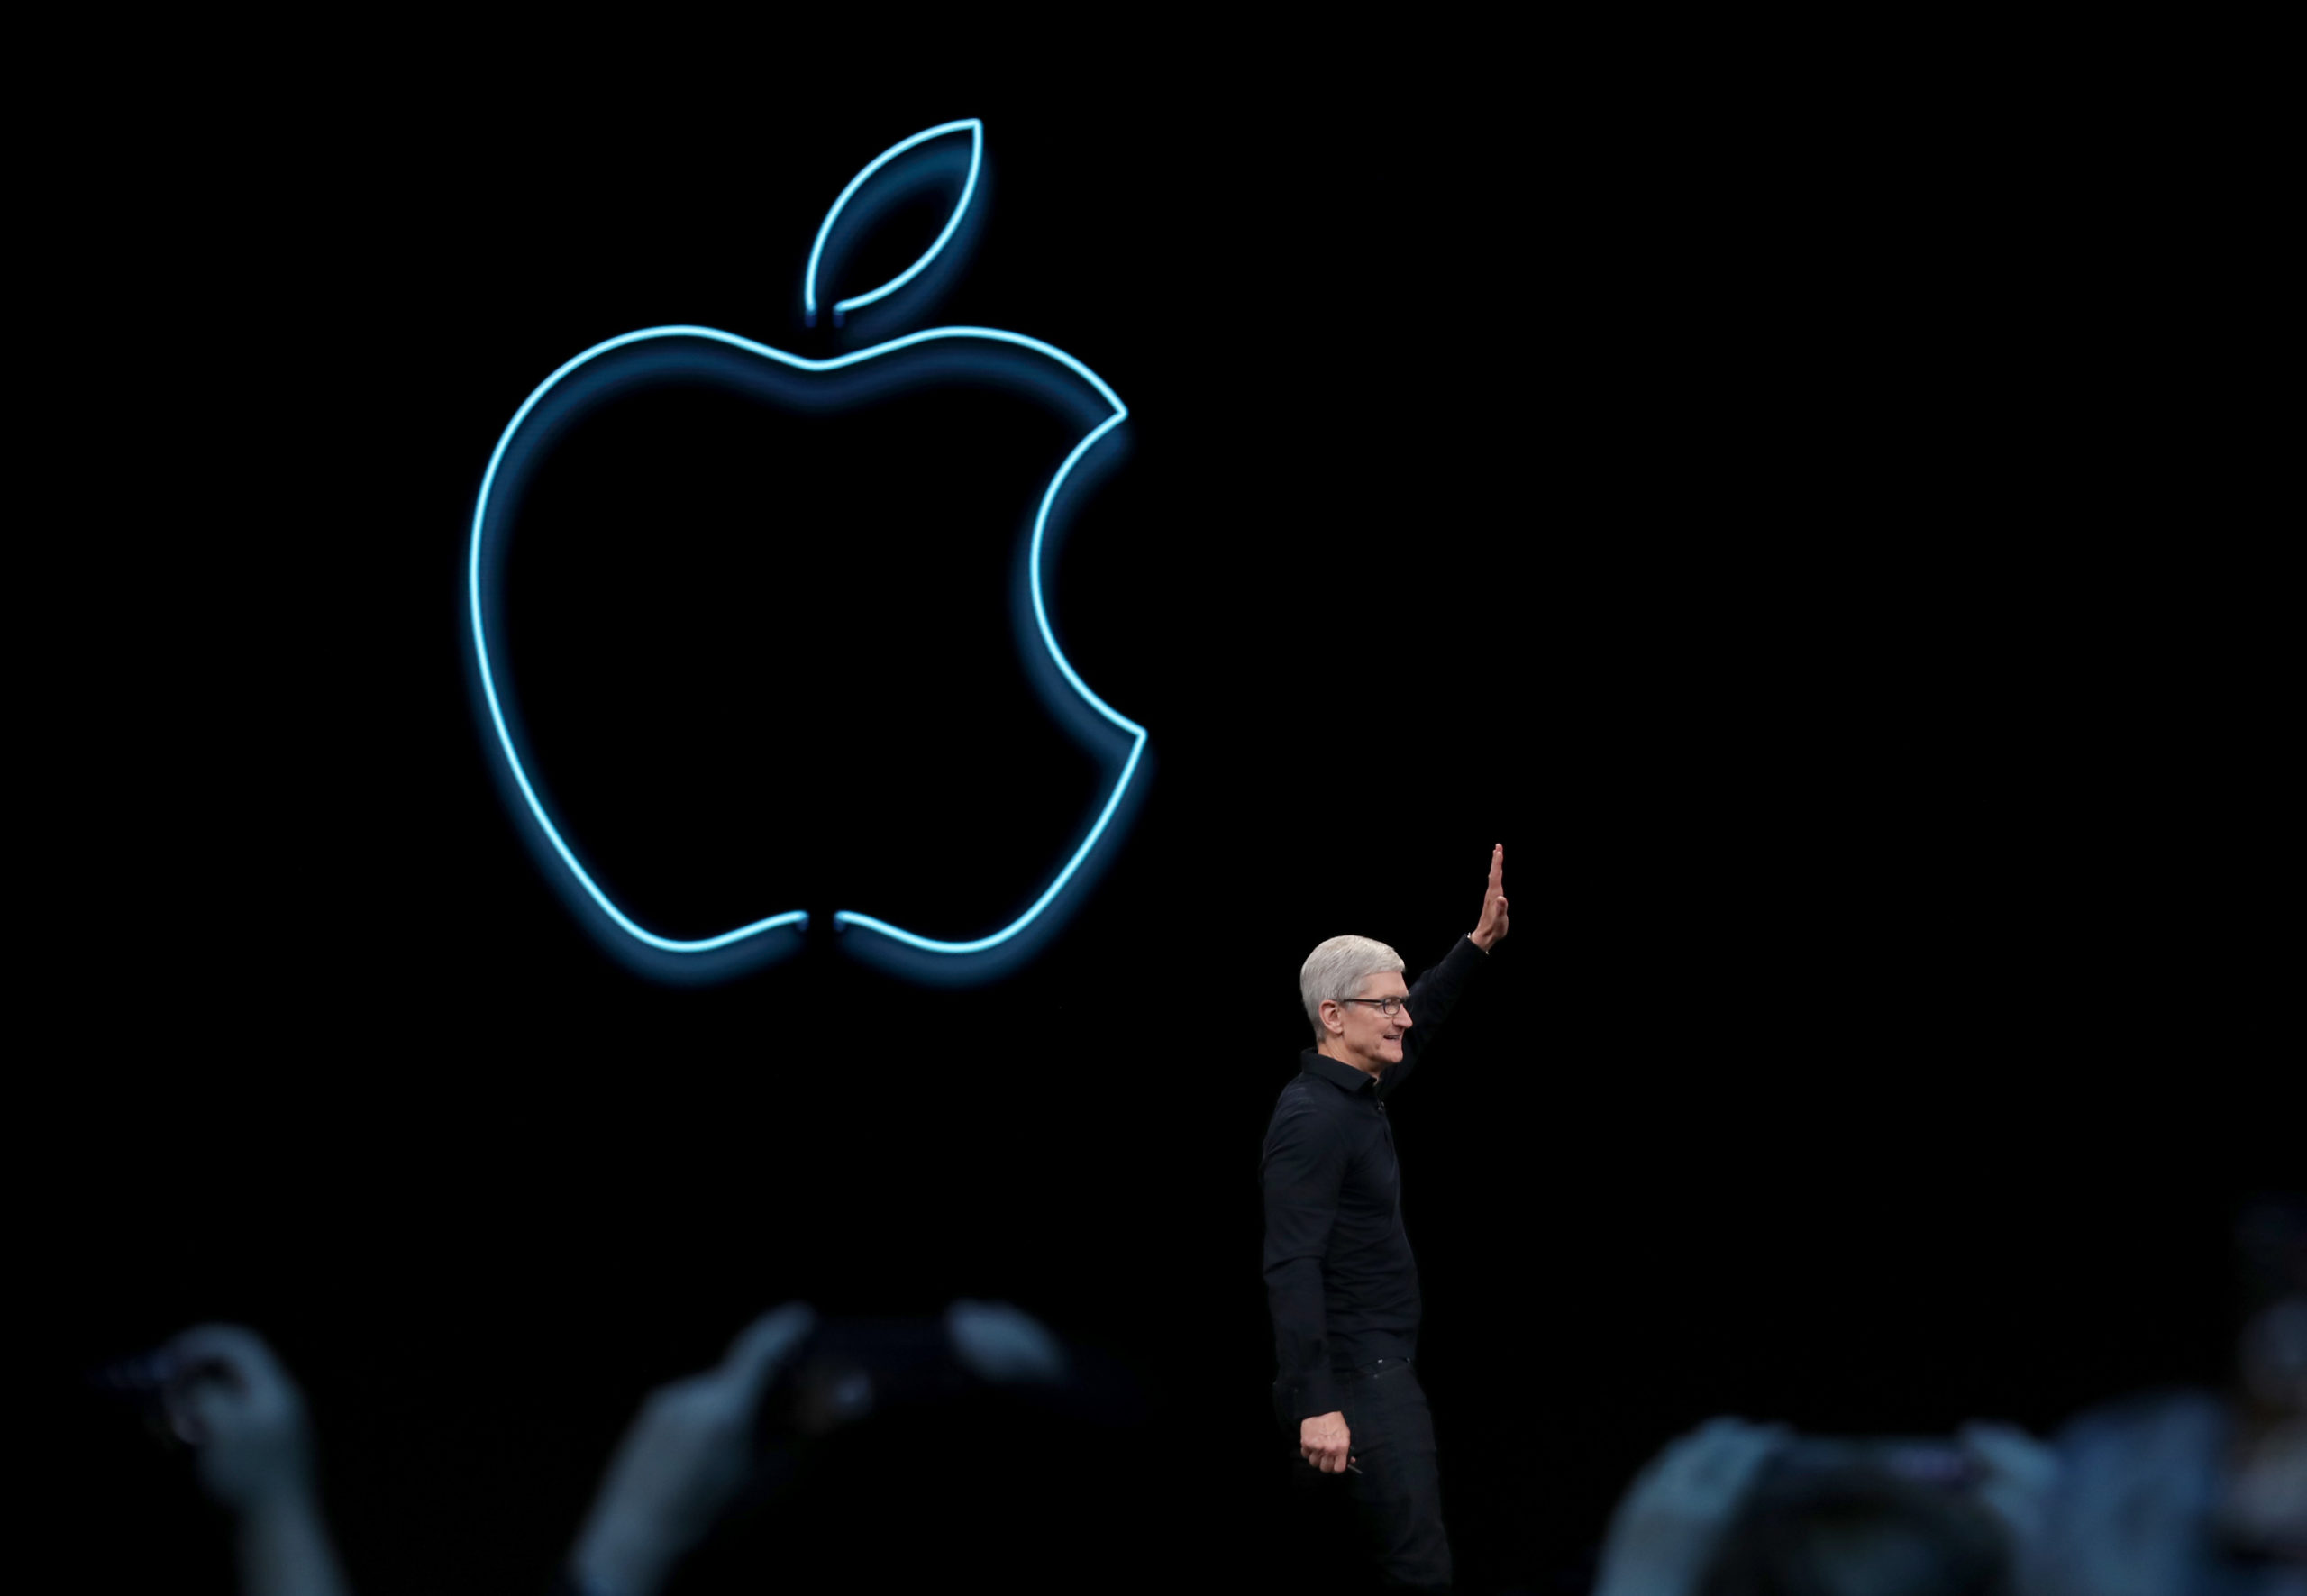 Apple CEO Tim Cook delivers the keynote address during the 2019 Apple Worldwide Developer Conference at the San Jose Convention Center on June 3, 2019 in San Jose, California. (Justin Sullivan/Getty Images)